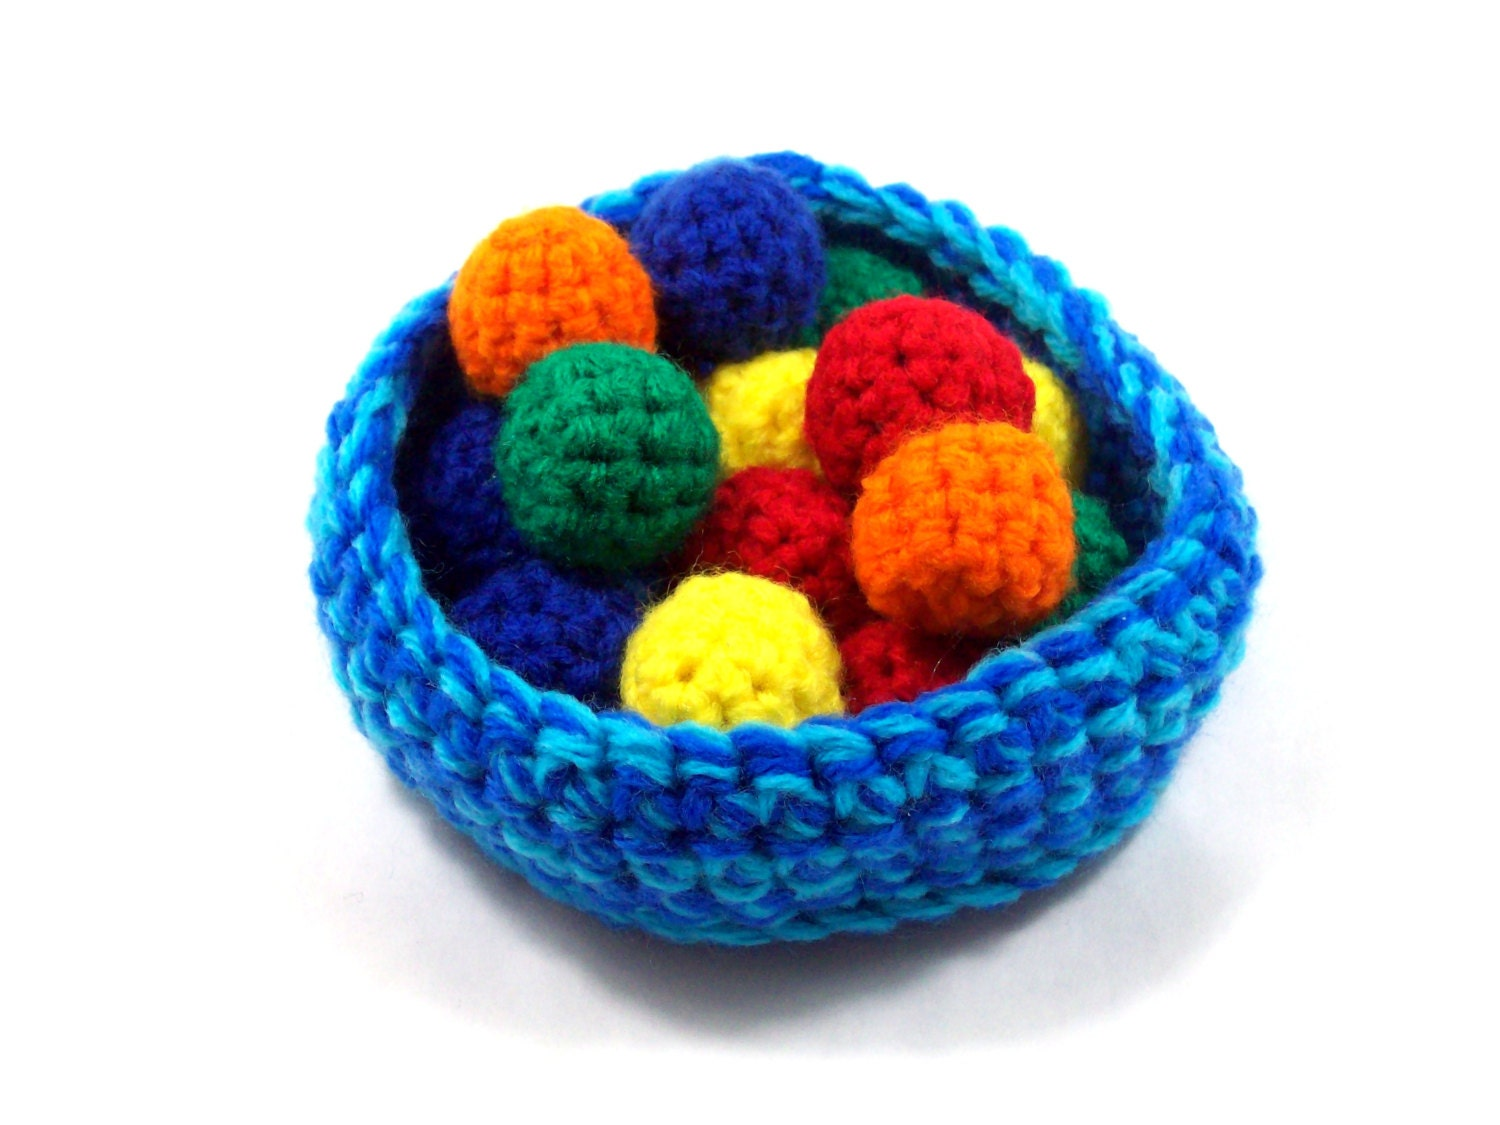 Pattern for Amigurumi Ball Pit by quietnova on Etsy